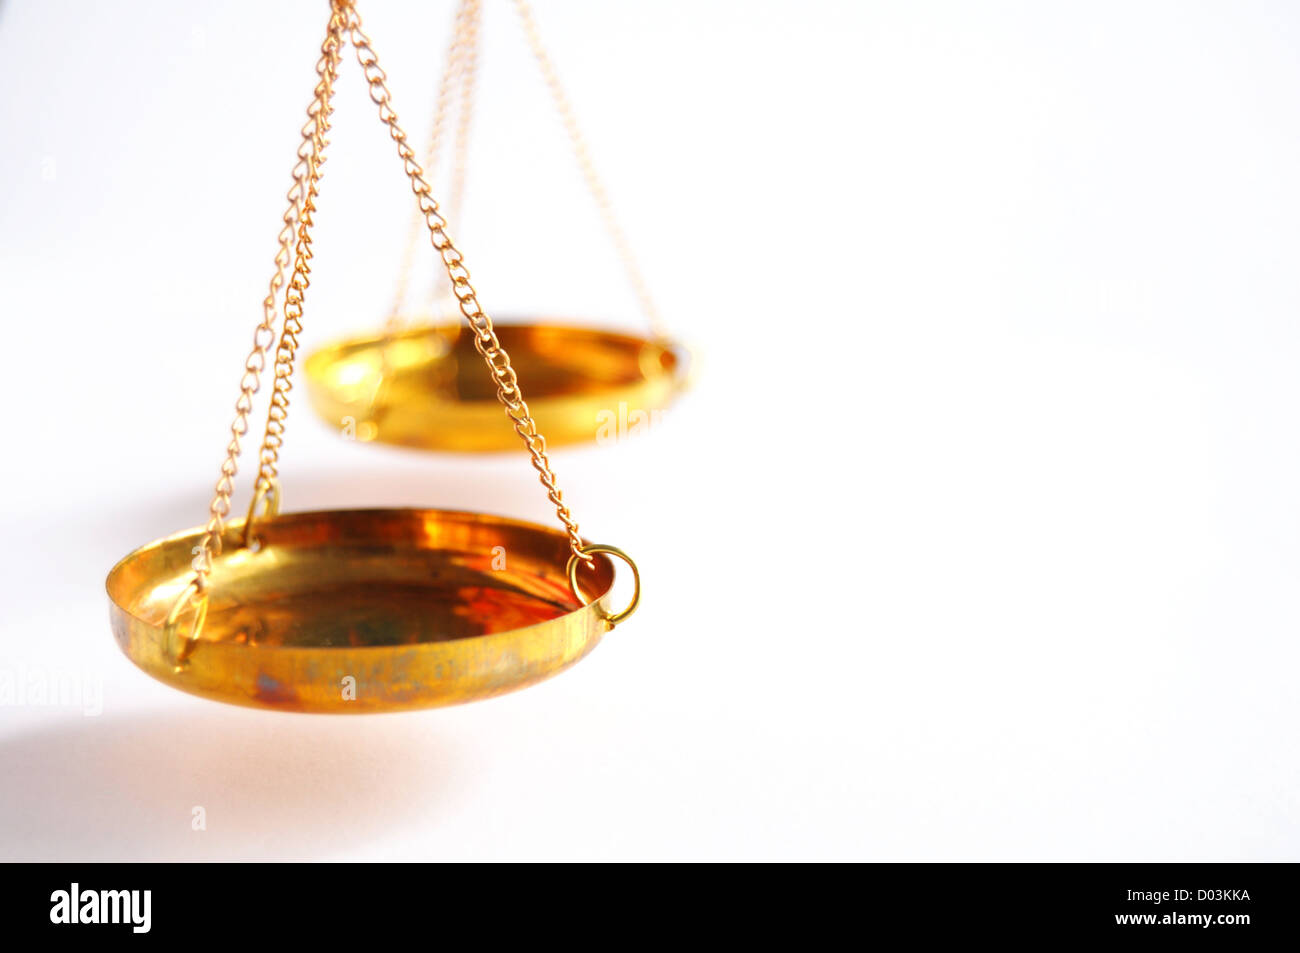 sclaes with copyspace showing law justice or court concept Stock Photo